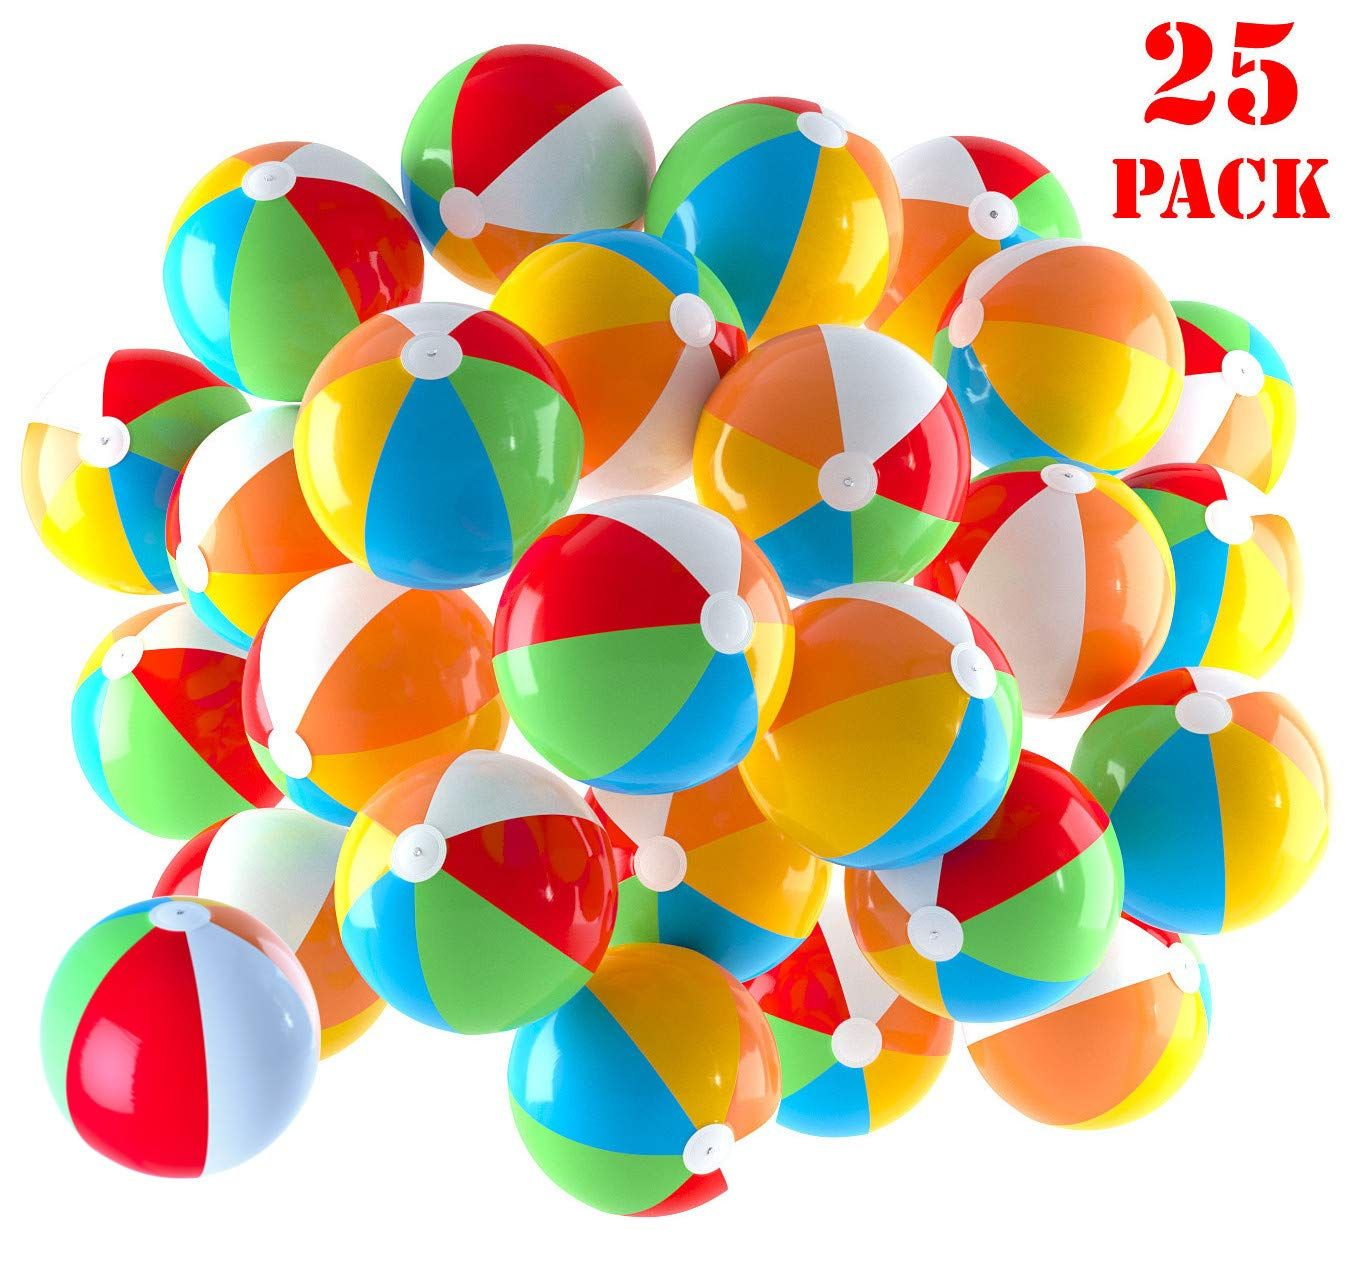 Inflatable Beach Balls 5 Inch For The Pool Beach Summer Parties